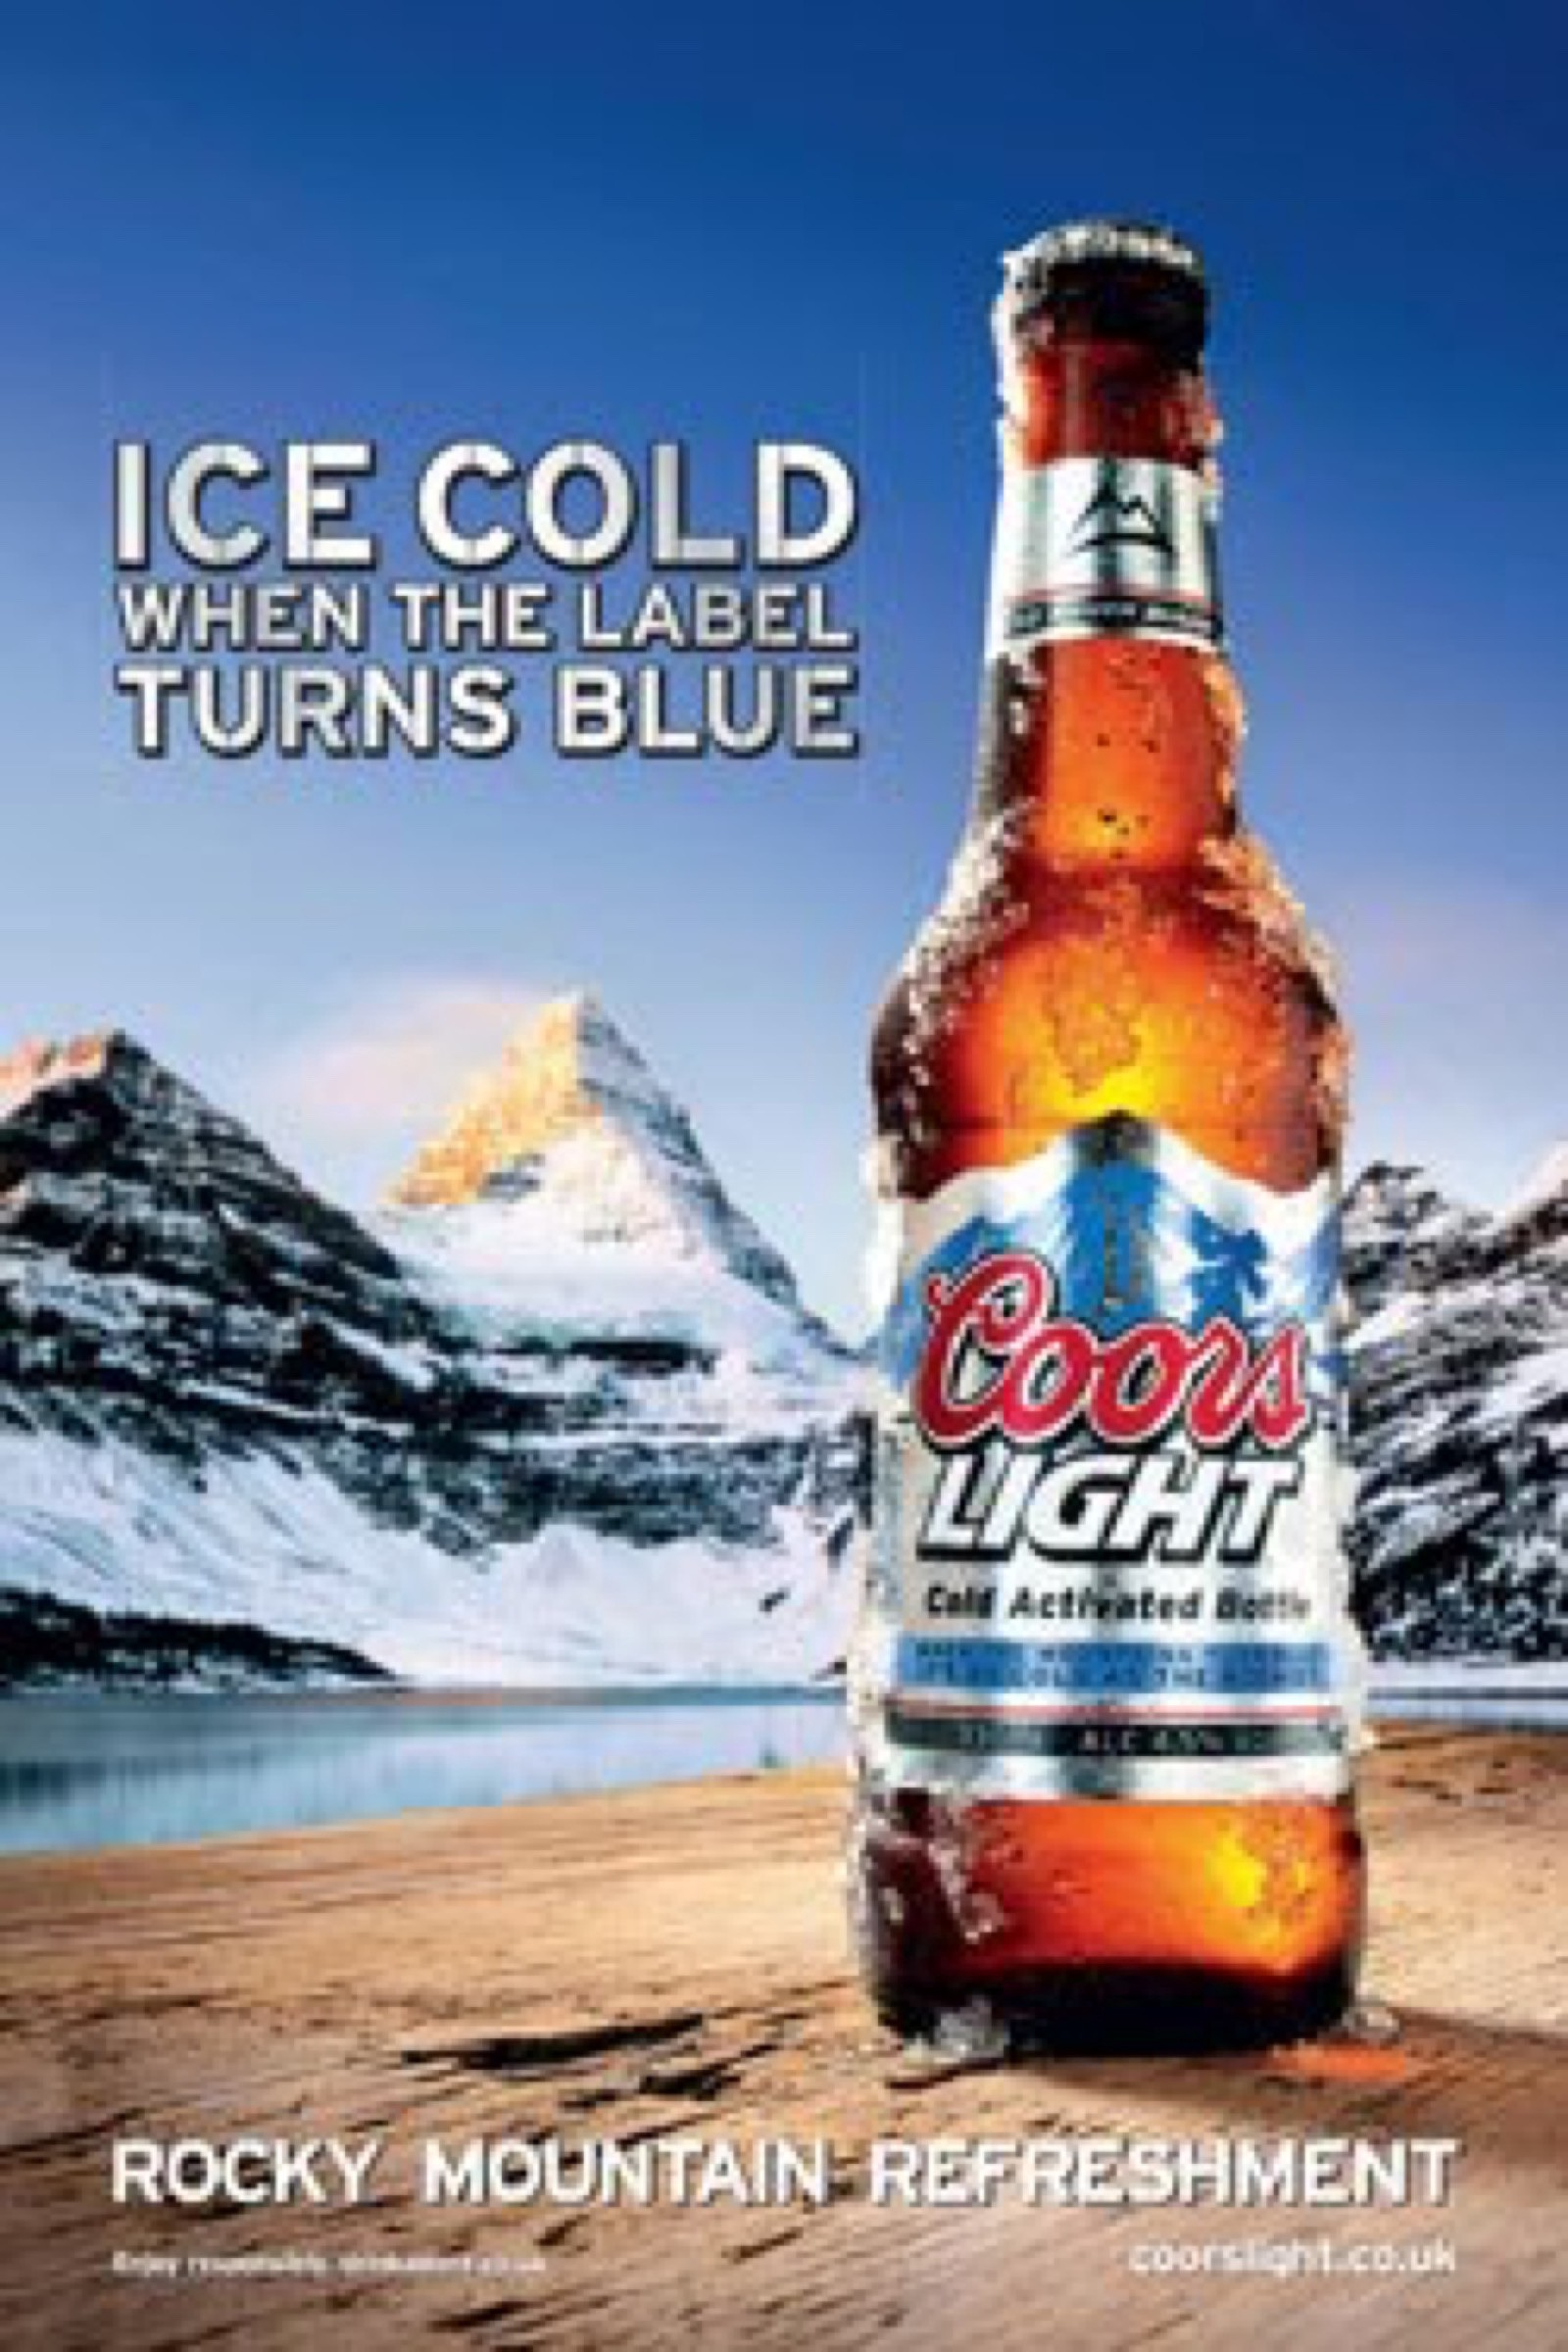 Nice This Advertisement Is For The Ice Cold Coors Light Beer. The Bottle Has Ice  Running Down Its Side, While It Is Placed In Front Of The Frosted Rocky ...